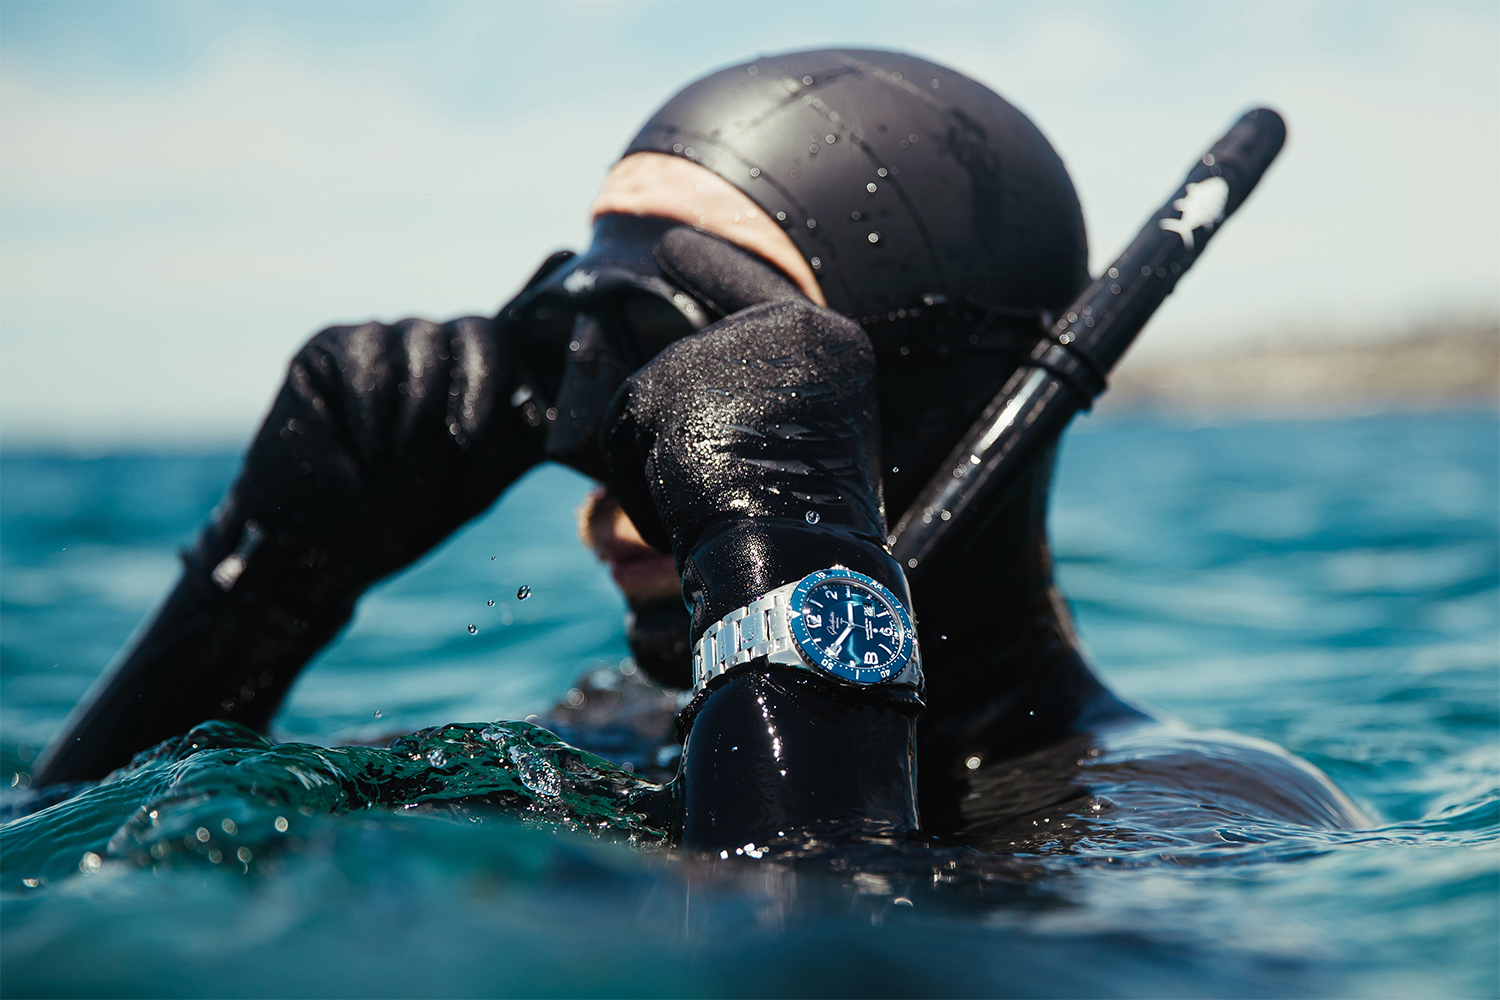 A diver in black wetsuit on surface wearing Glashütte Original watch